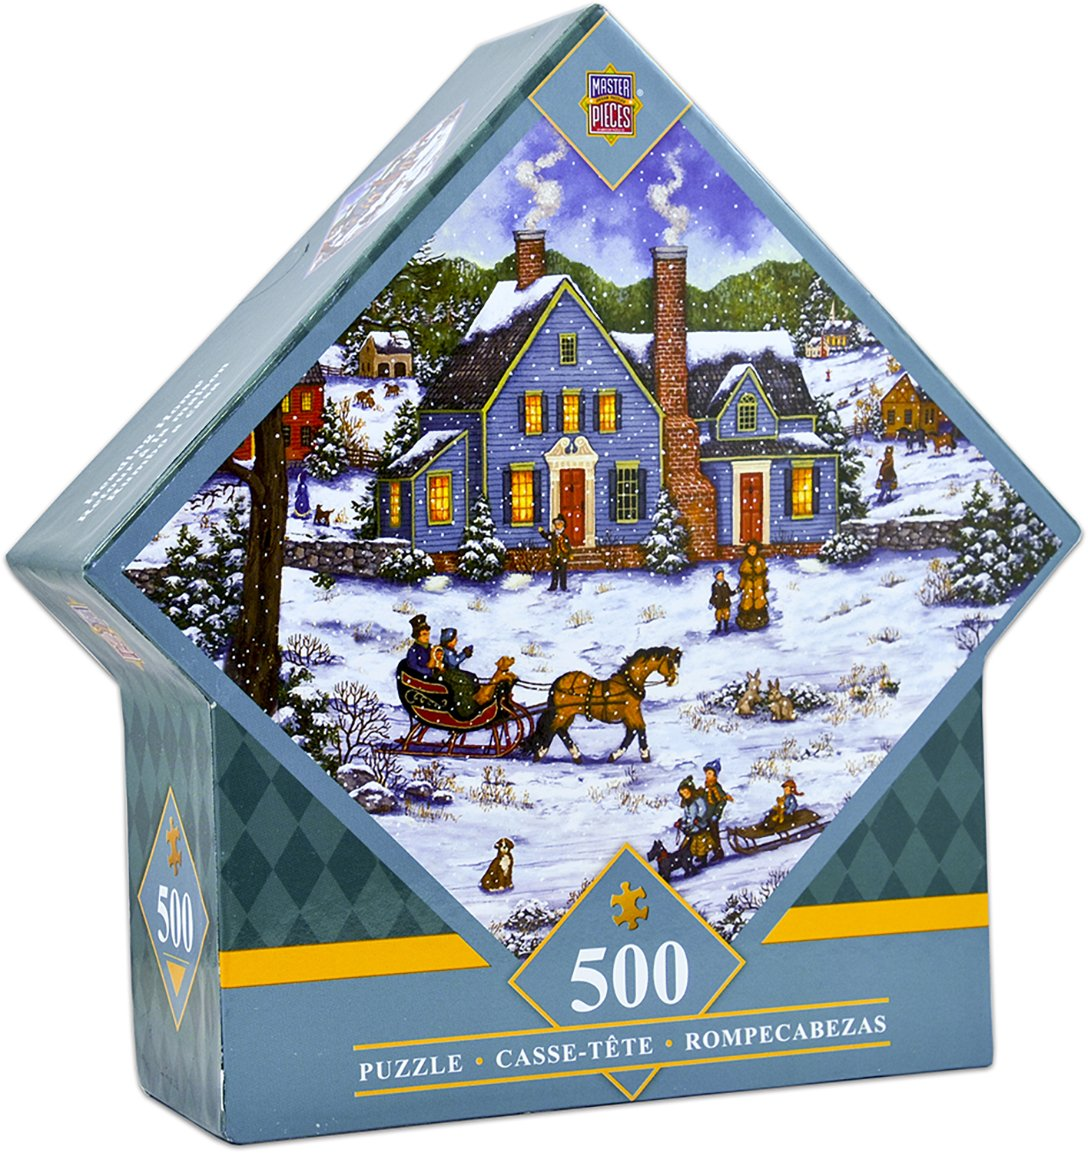 Amazon.com: MasterPieces Heading Home - Winter Sleigh Ride 500 Piece Diamond Shaped Jigsaw Puzzle by Bonnie White: Toys & Games